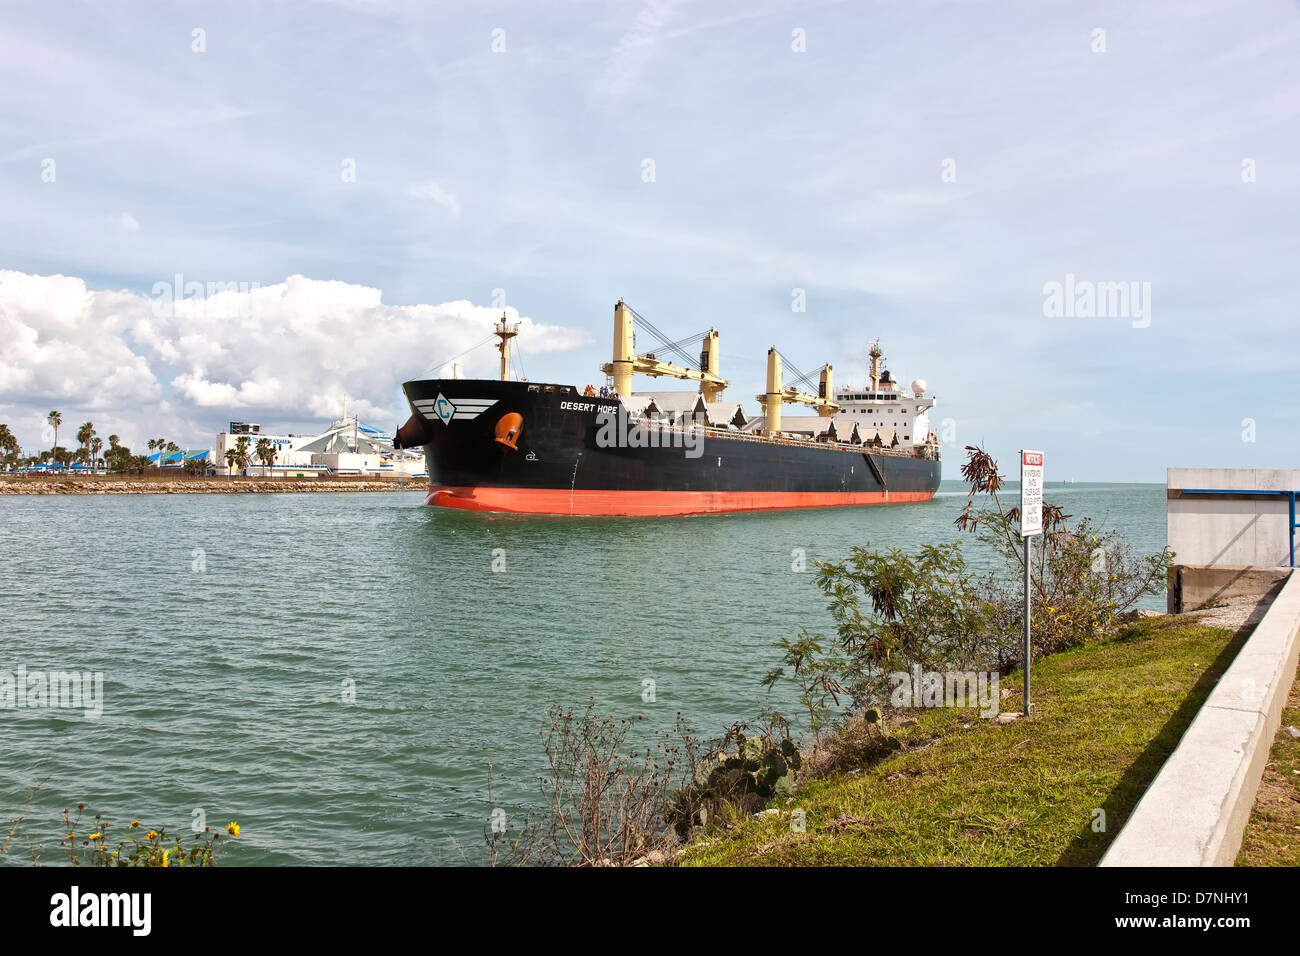 Freighter transporting grain, entering Port Of Corpus Christi. Stock Photo